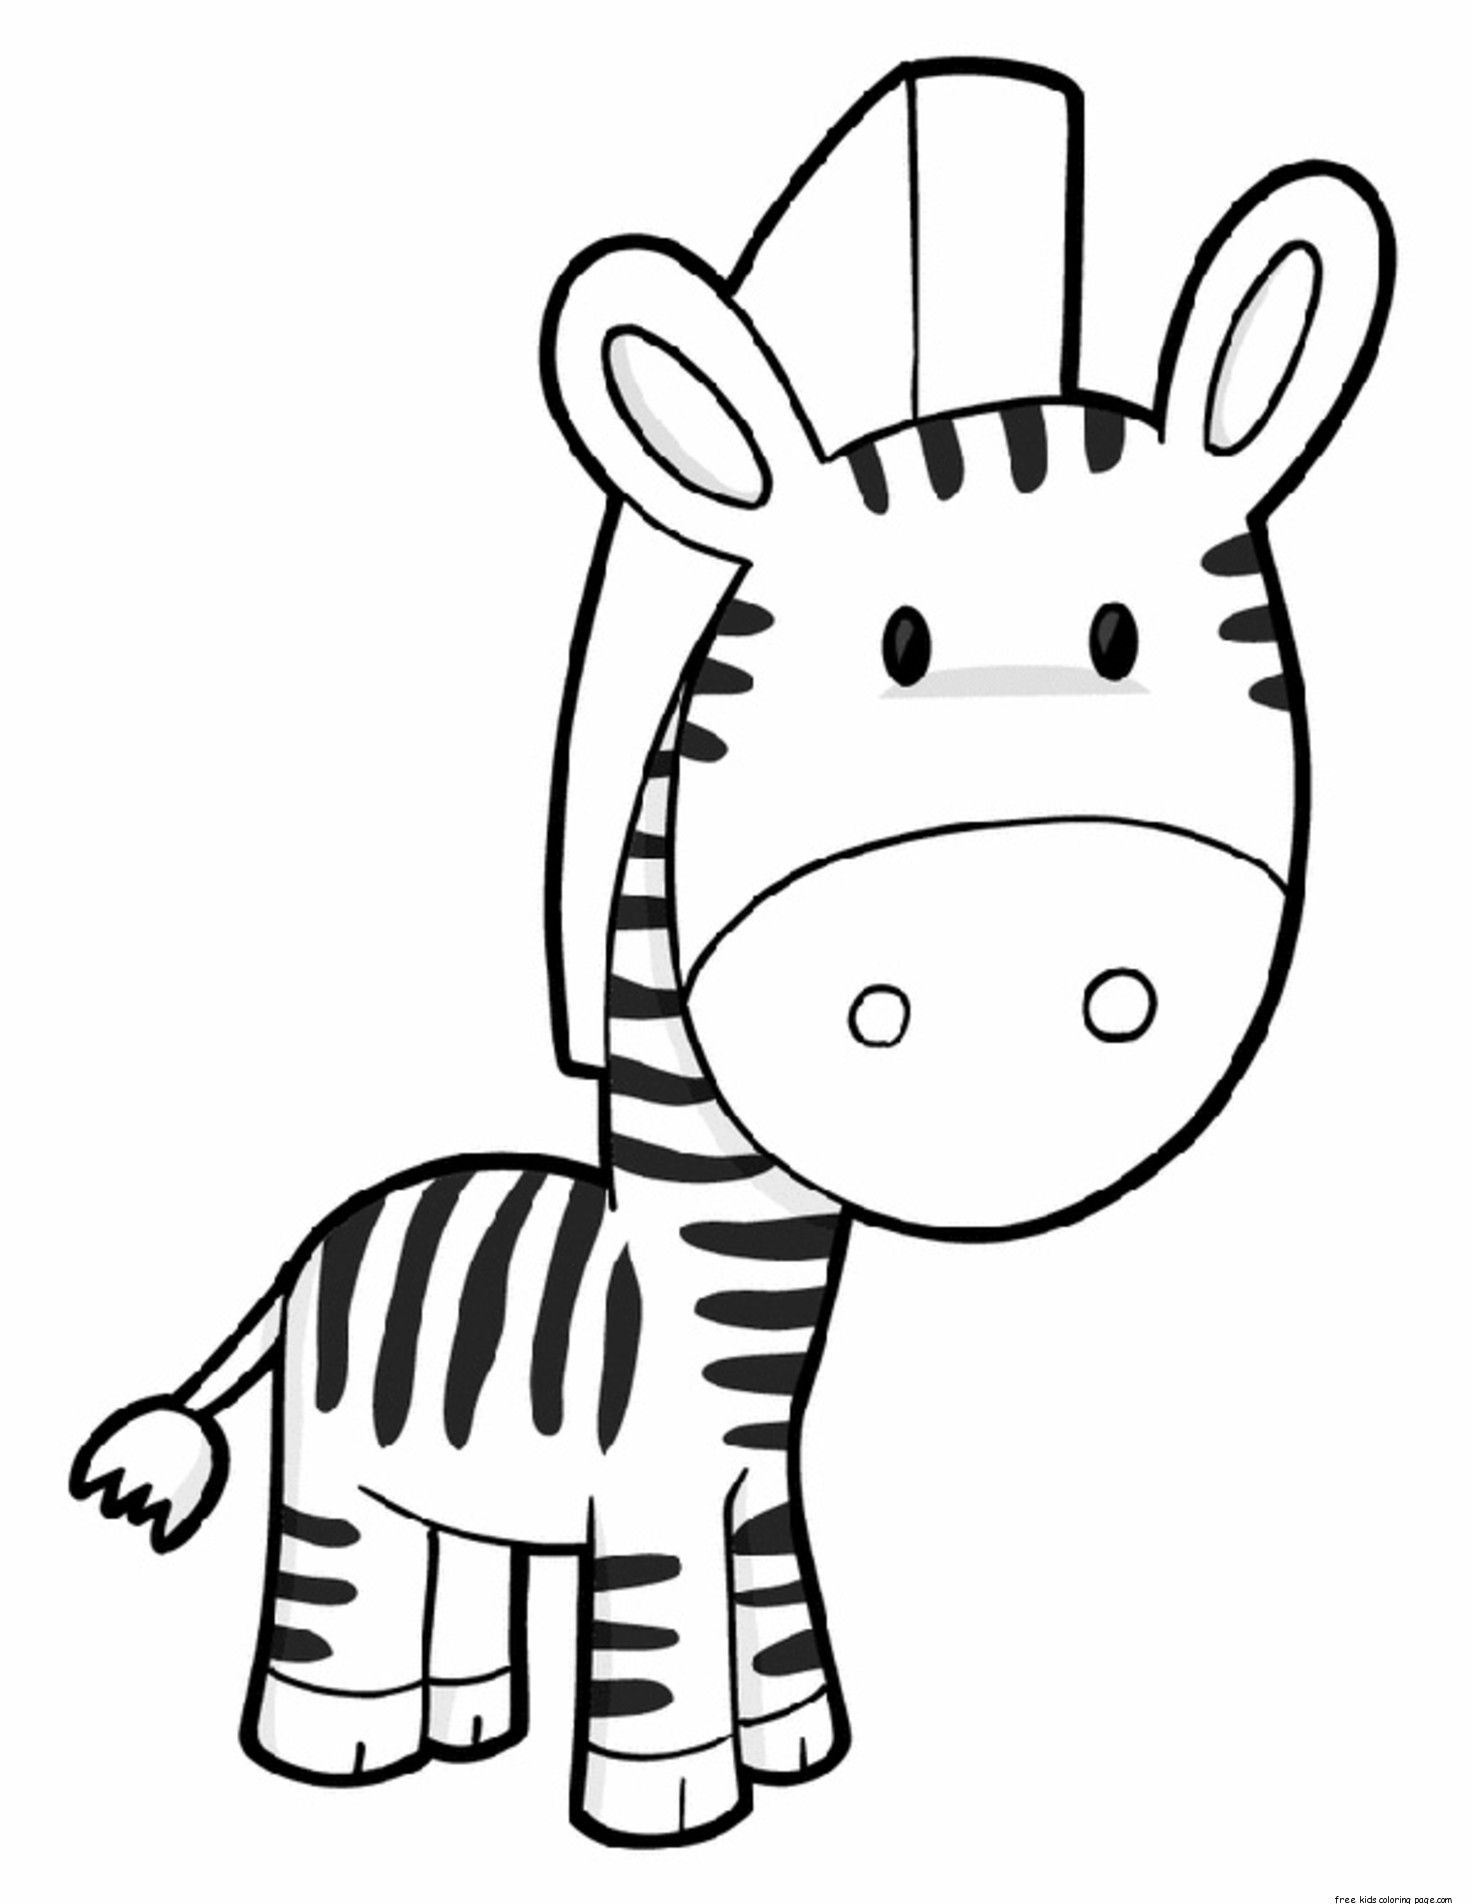 Delightful Printable Cute Zebra Coloring Pages: